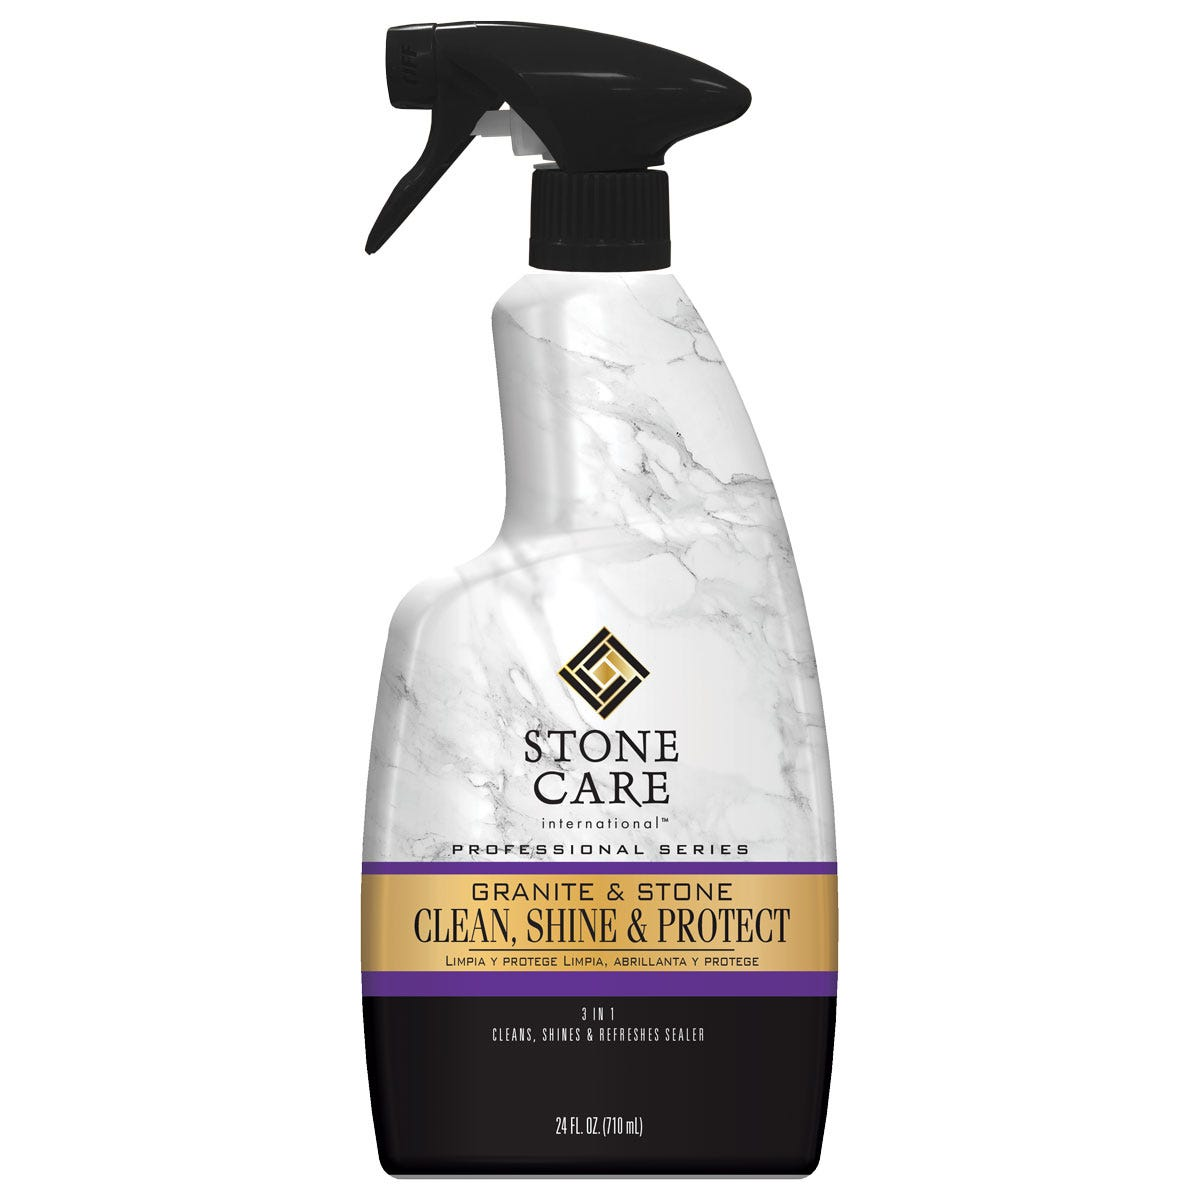 Granite & Stone Clean, Shine & Protect